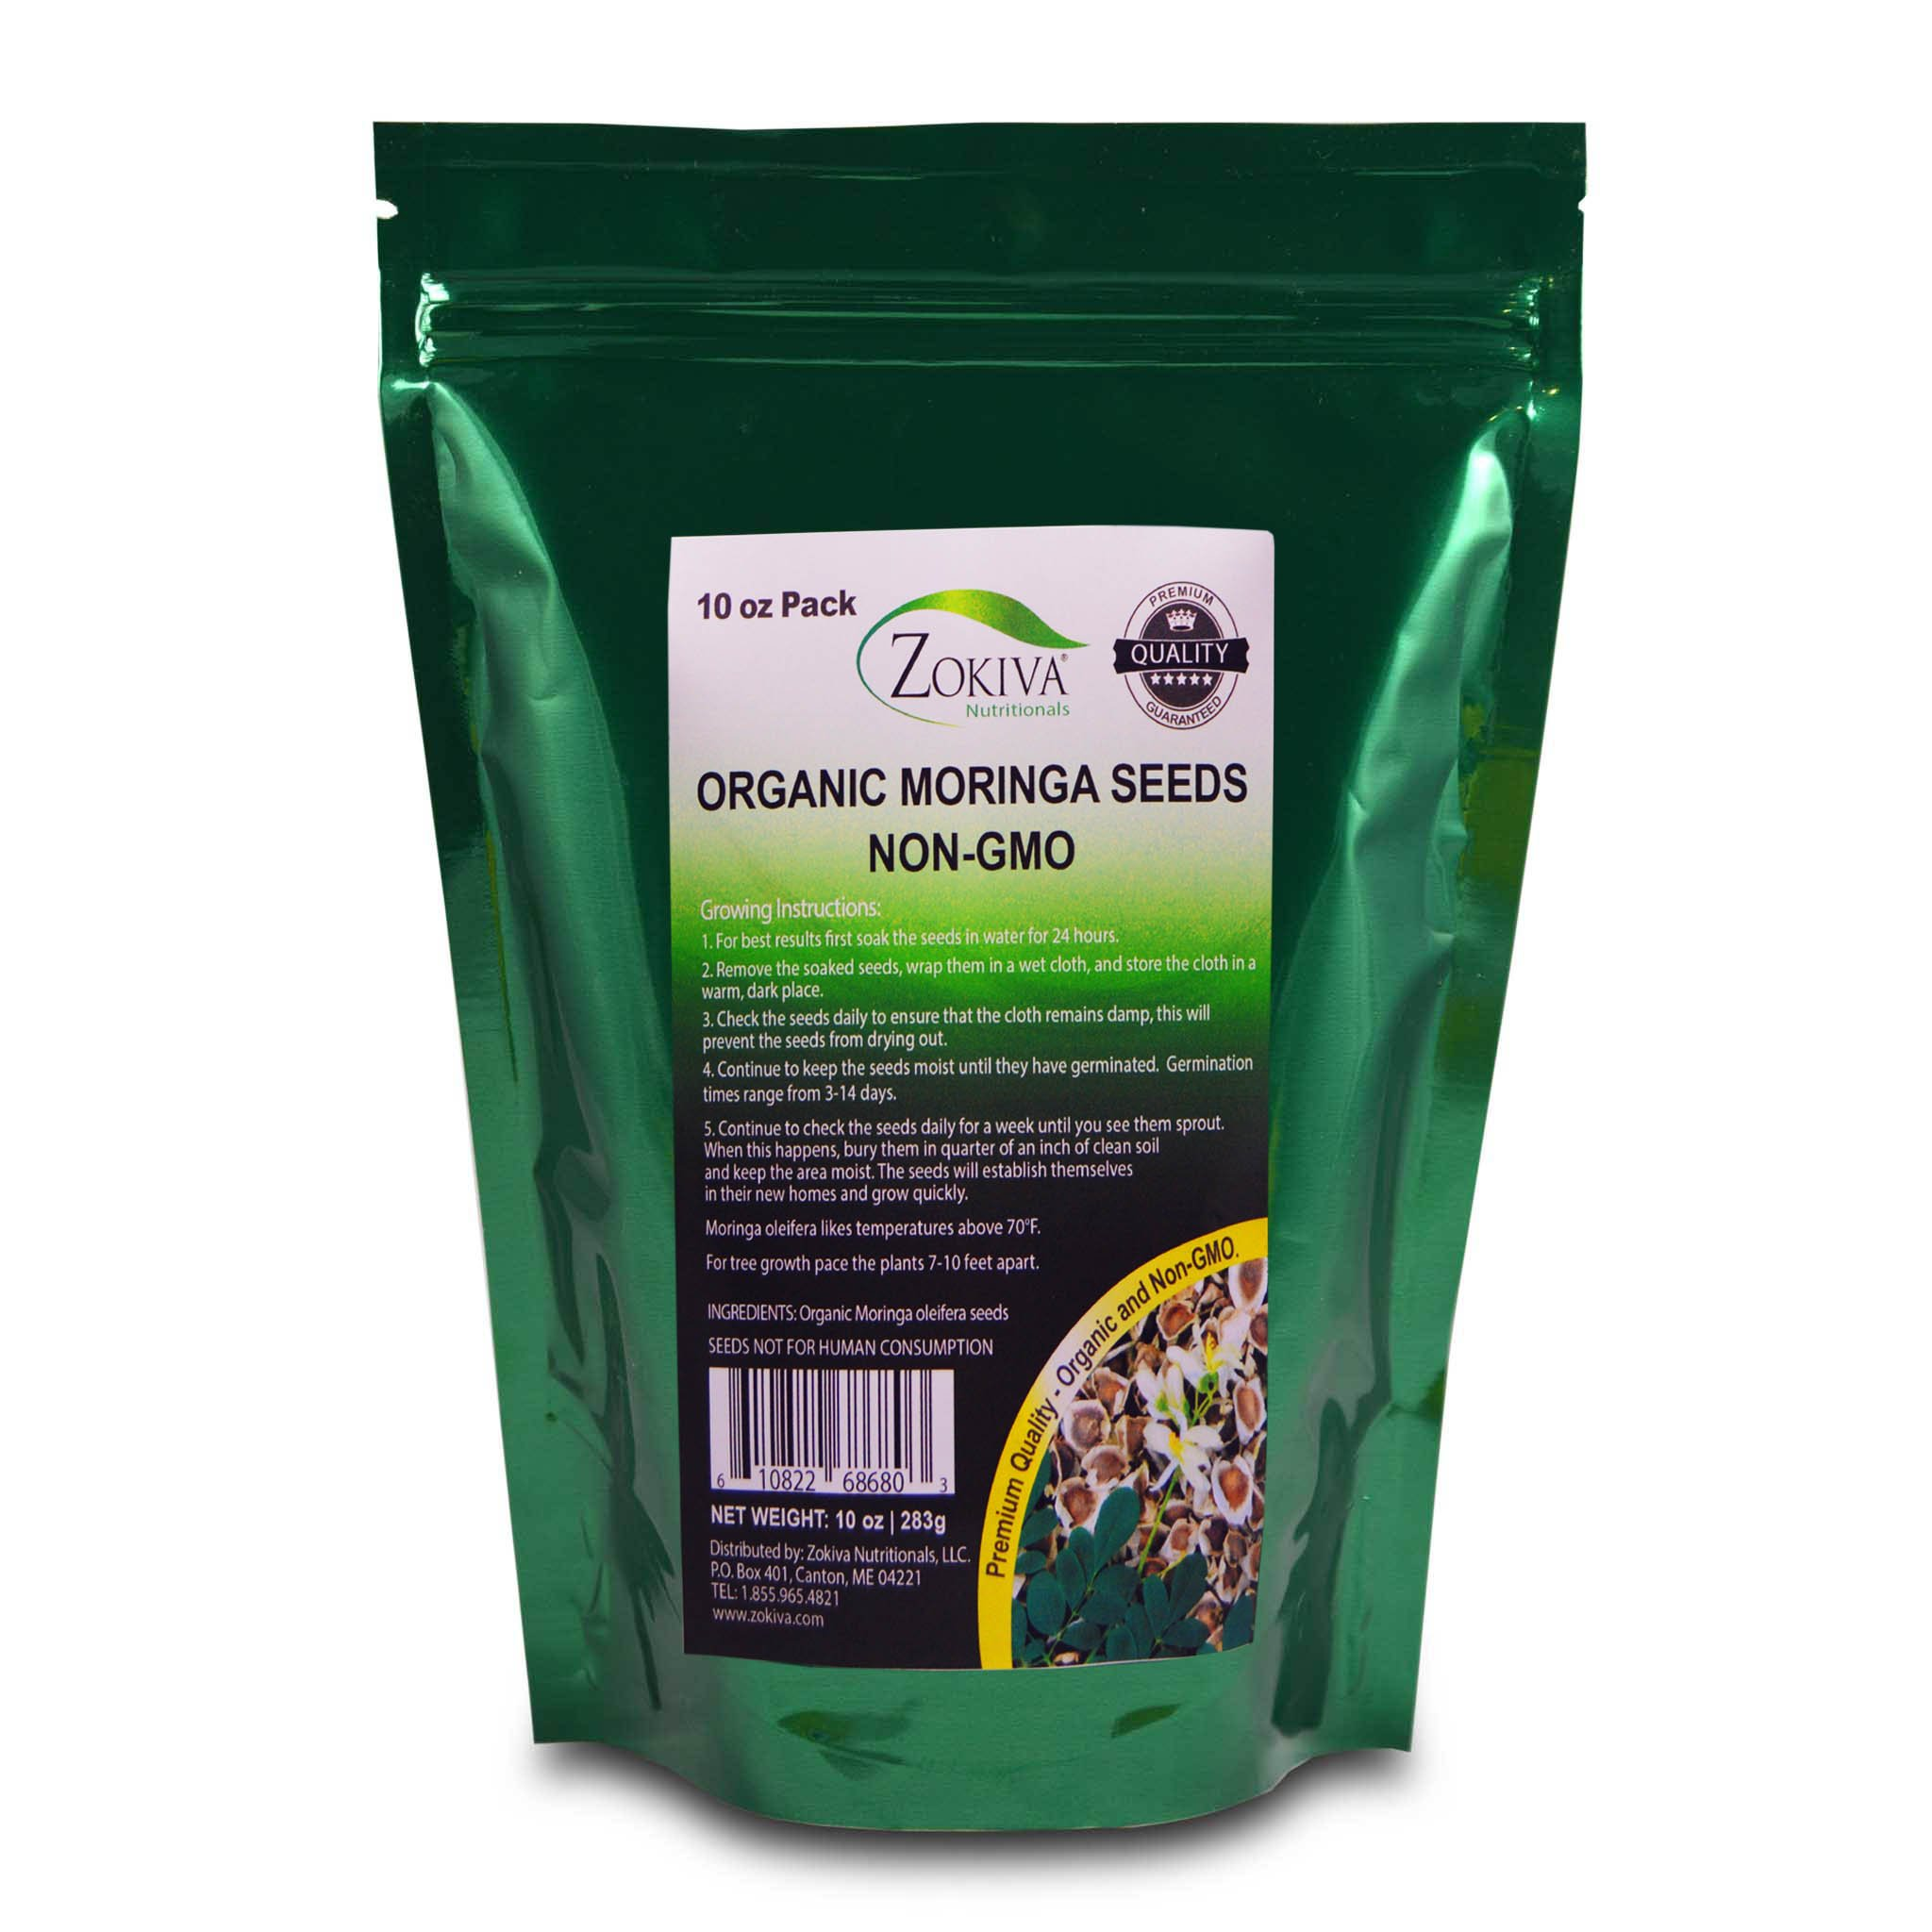 Moringa Seeds Organic Non-GMO Premium Quality 10 oz Pack in Resealable Pouch by Zokiva Nutritionals